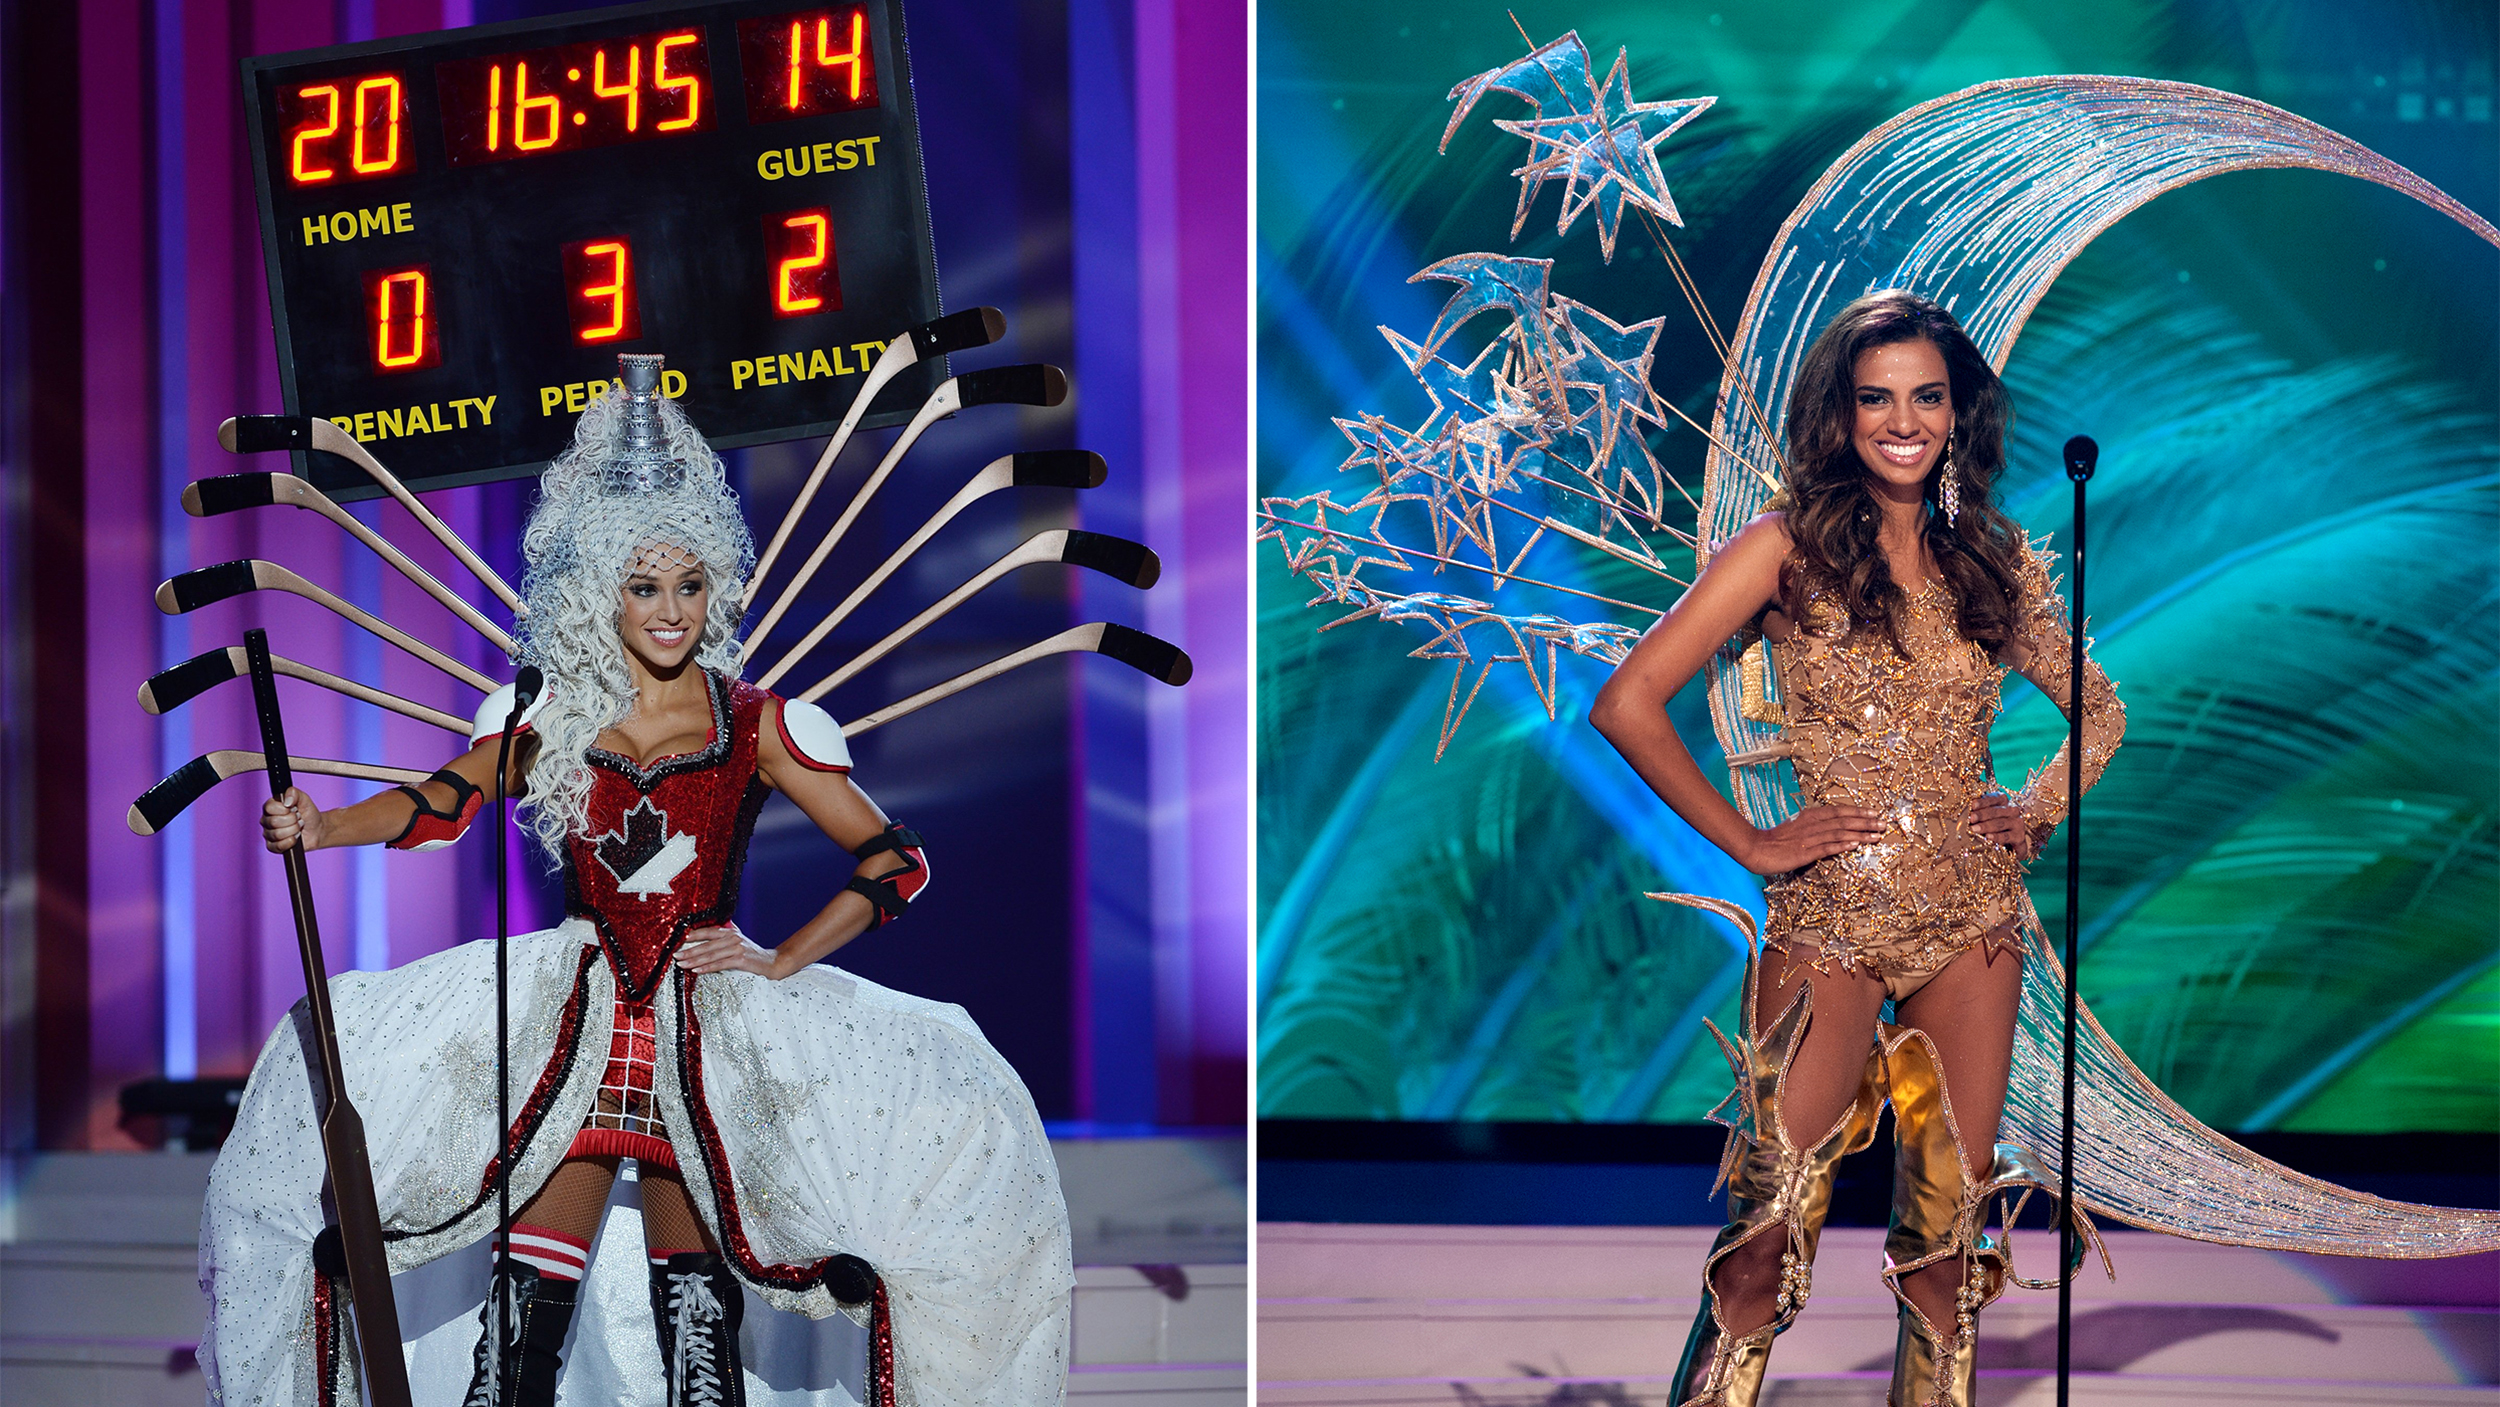 Miss universe pageant 2015 costumes for preliminary show border on